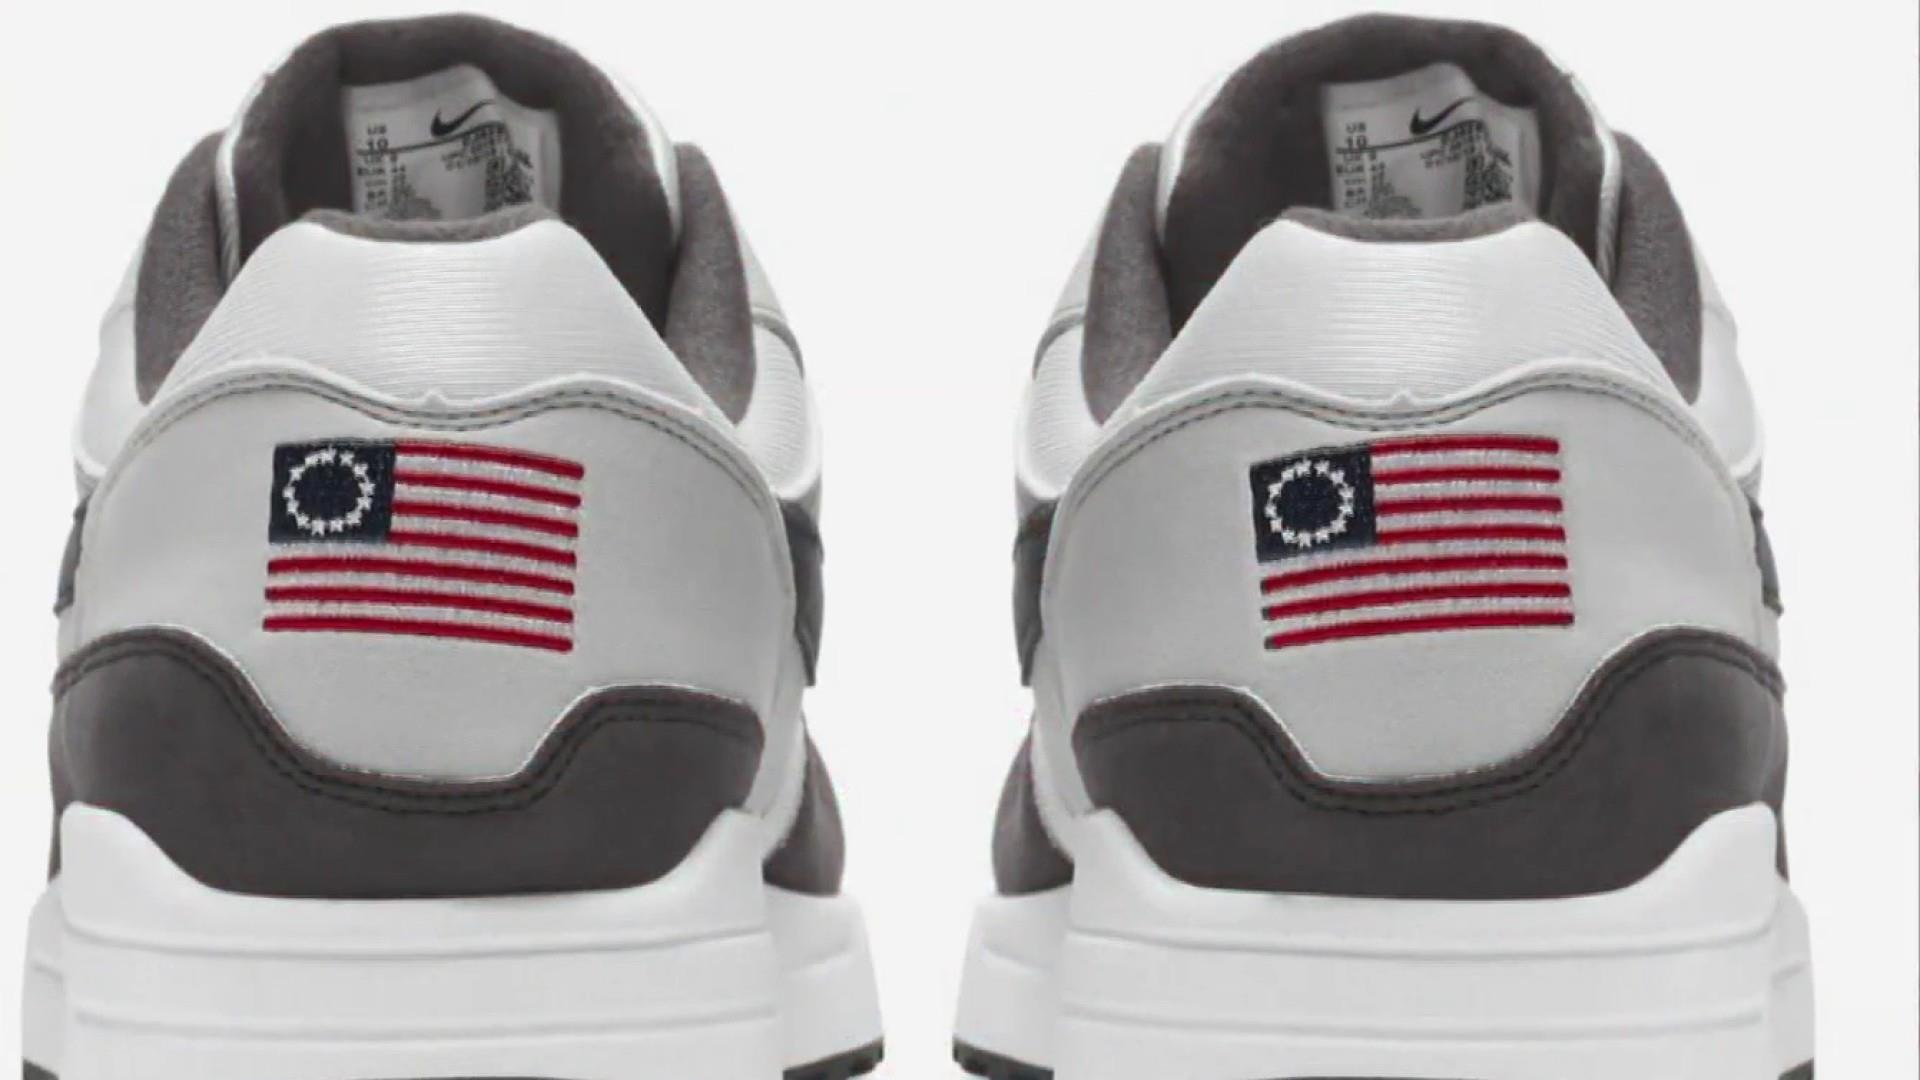 Arizona Gov. Ducey has change of heart for Nike following Betsy Ross flag controversy